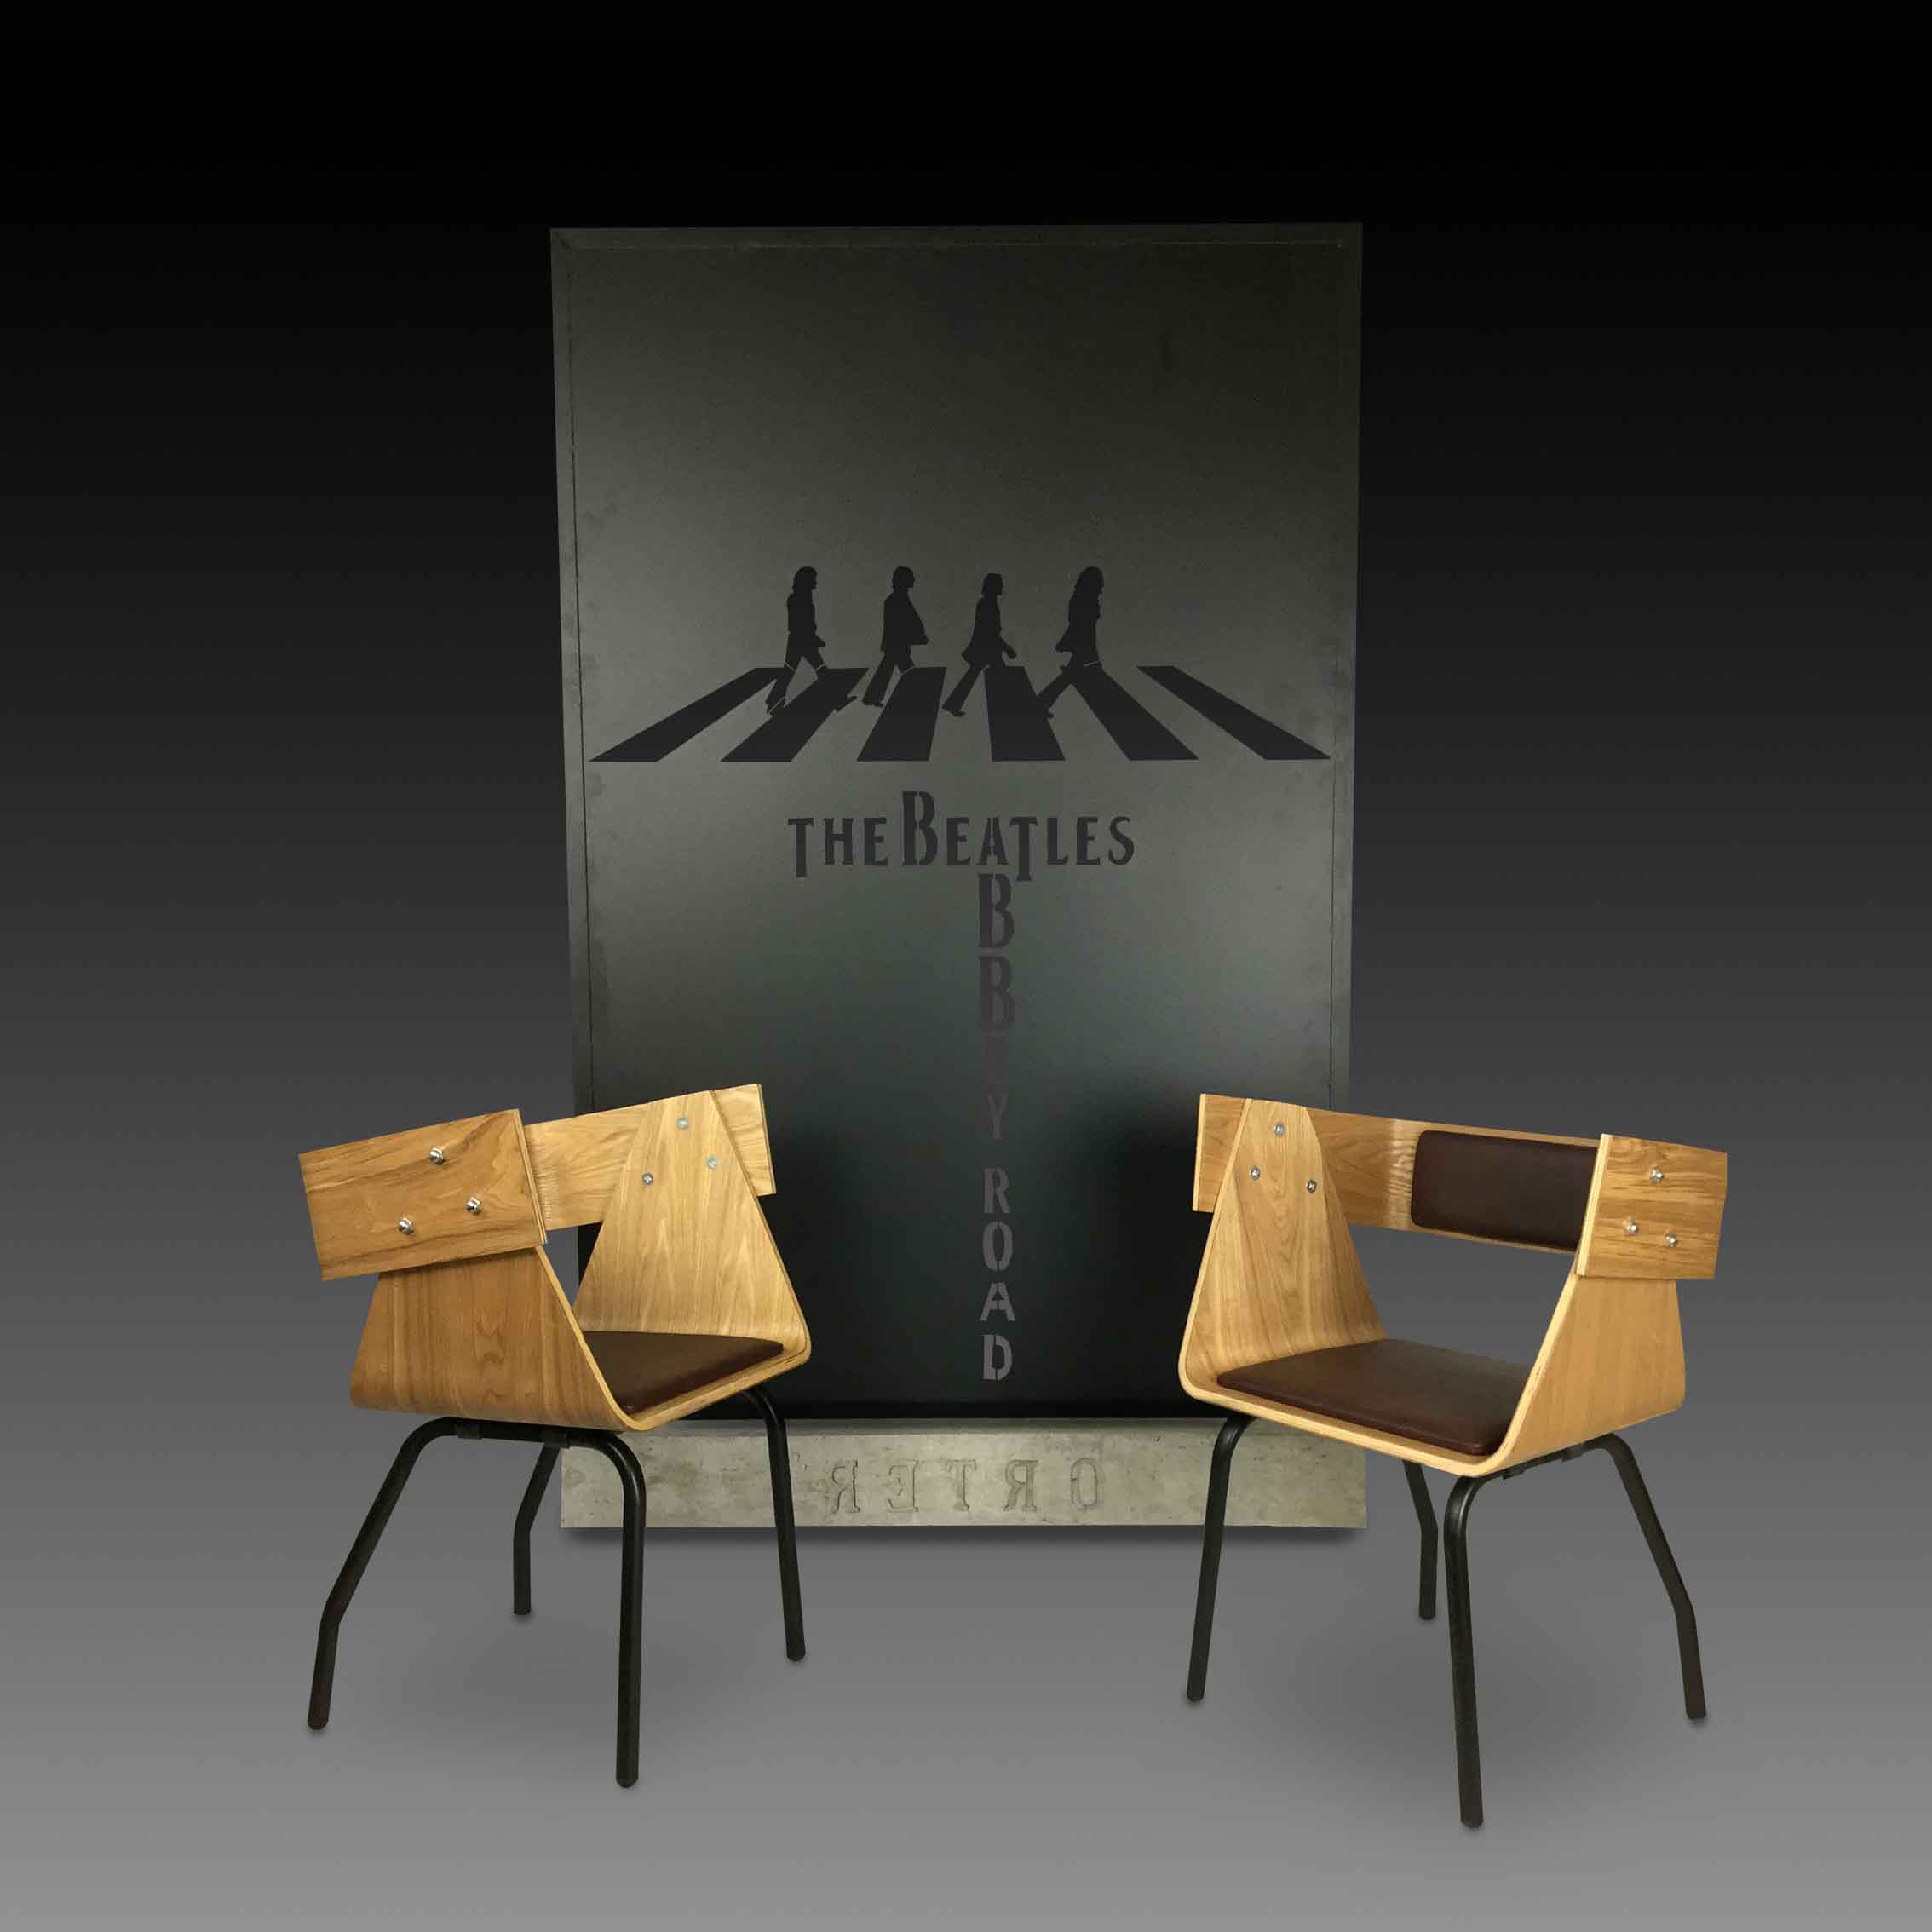 Beatles room divider with concrete base and 2 wooden chairs by Smoke